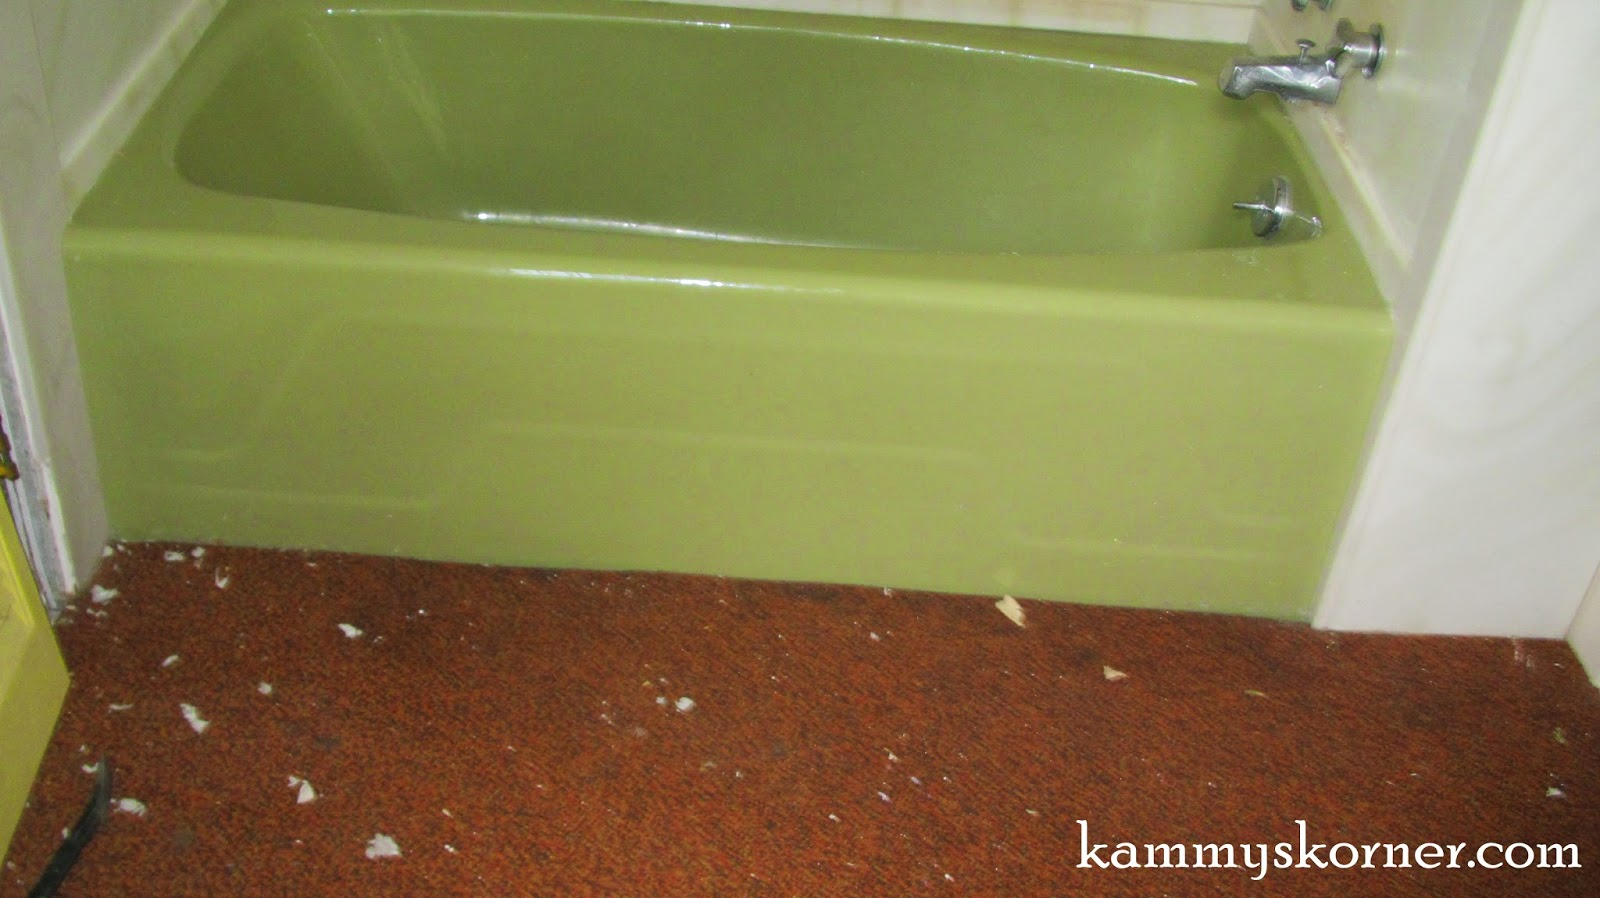 Kammy's Korner: Rockin' The Avocado Green Bathtub (For Now!!)